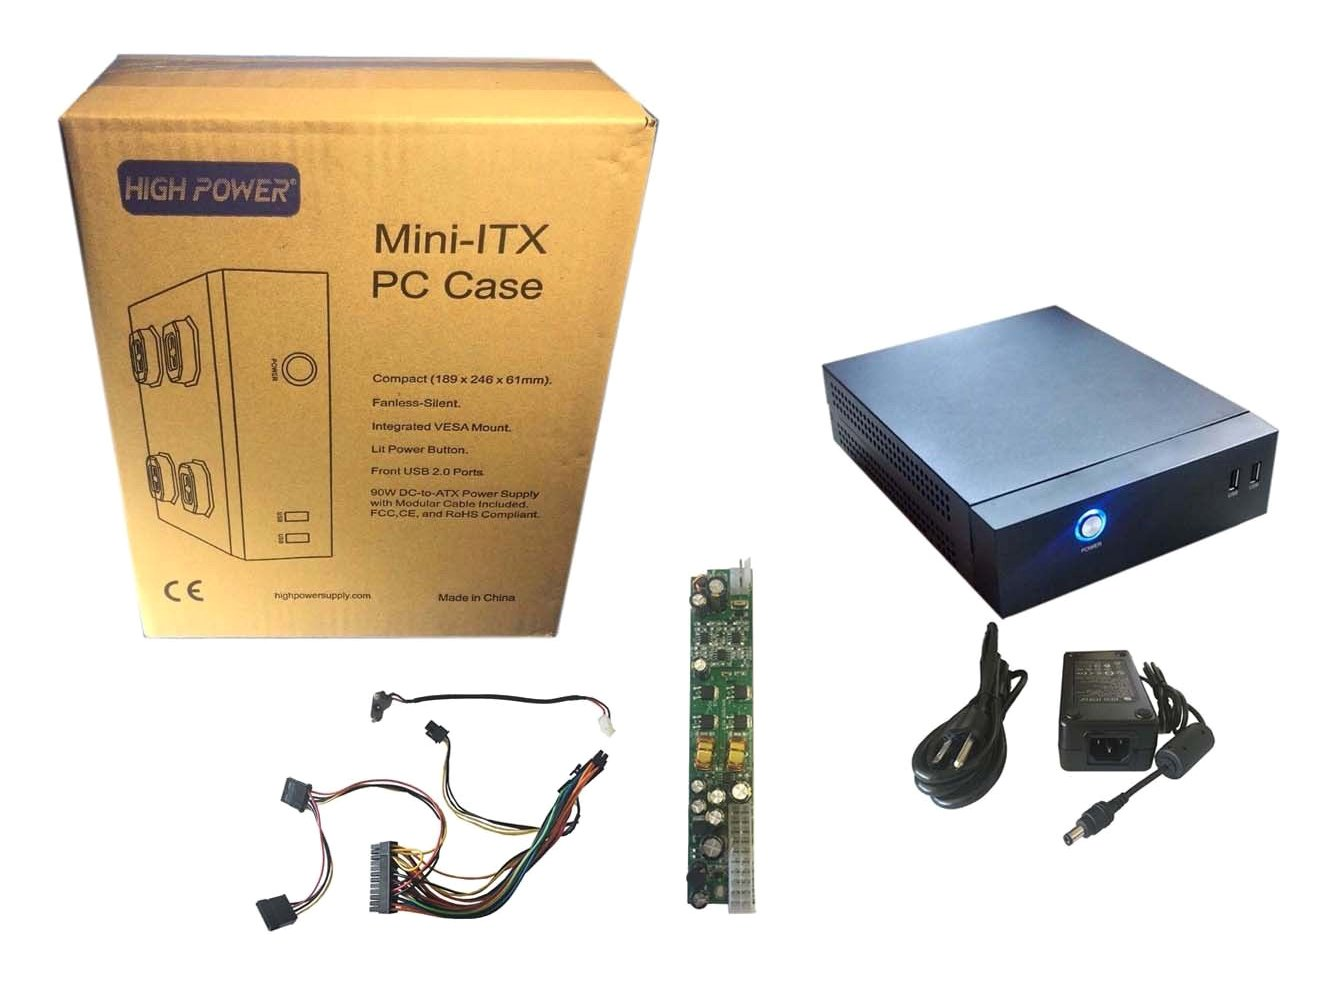 HIGH Power mITX-0DB Fanless Mini ITX Desktop/Tower/VESA-Mount PC System Case Kit, Black by HIGH POWER (Image #1)